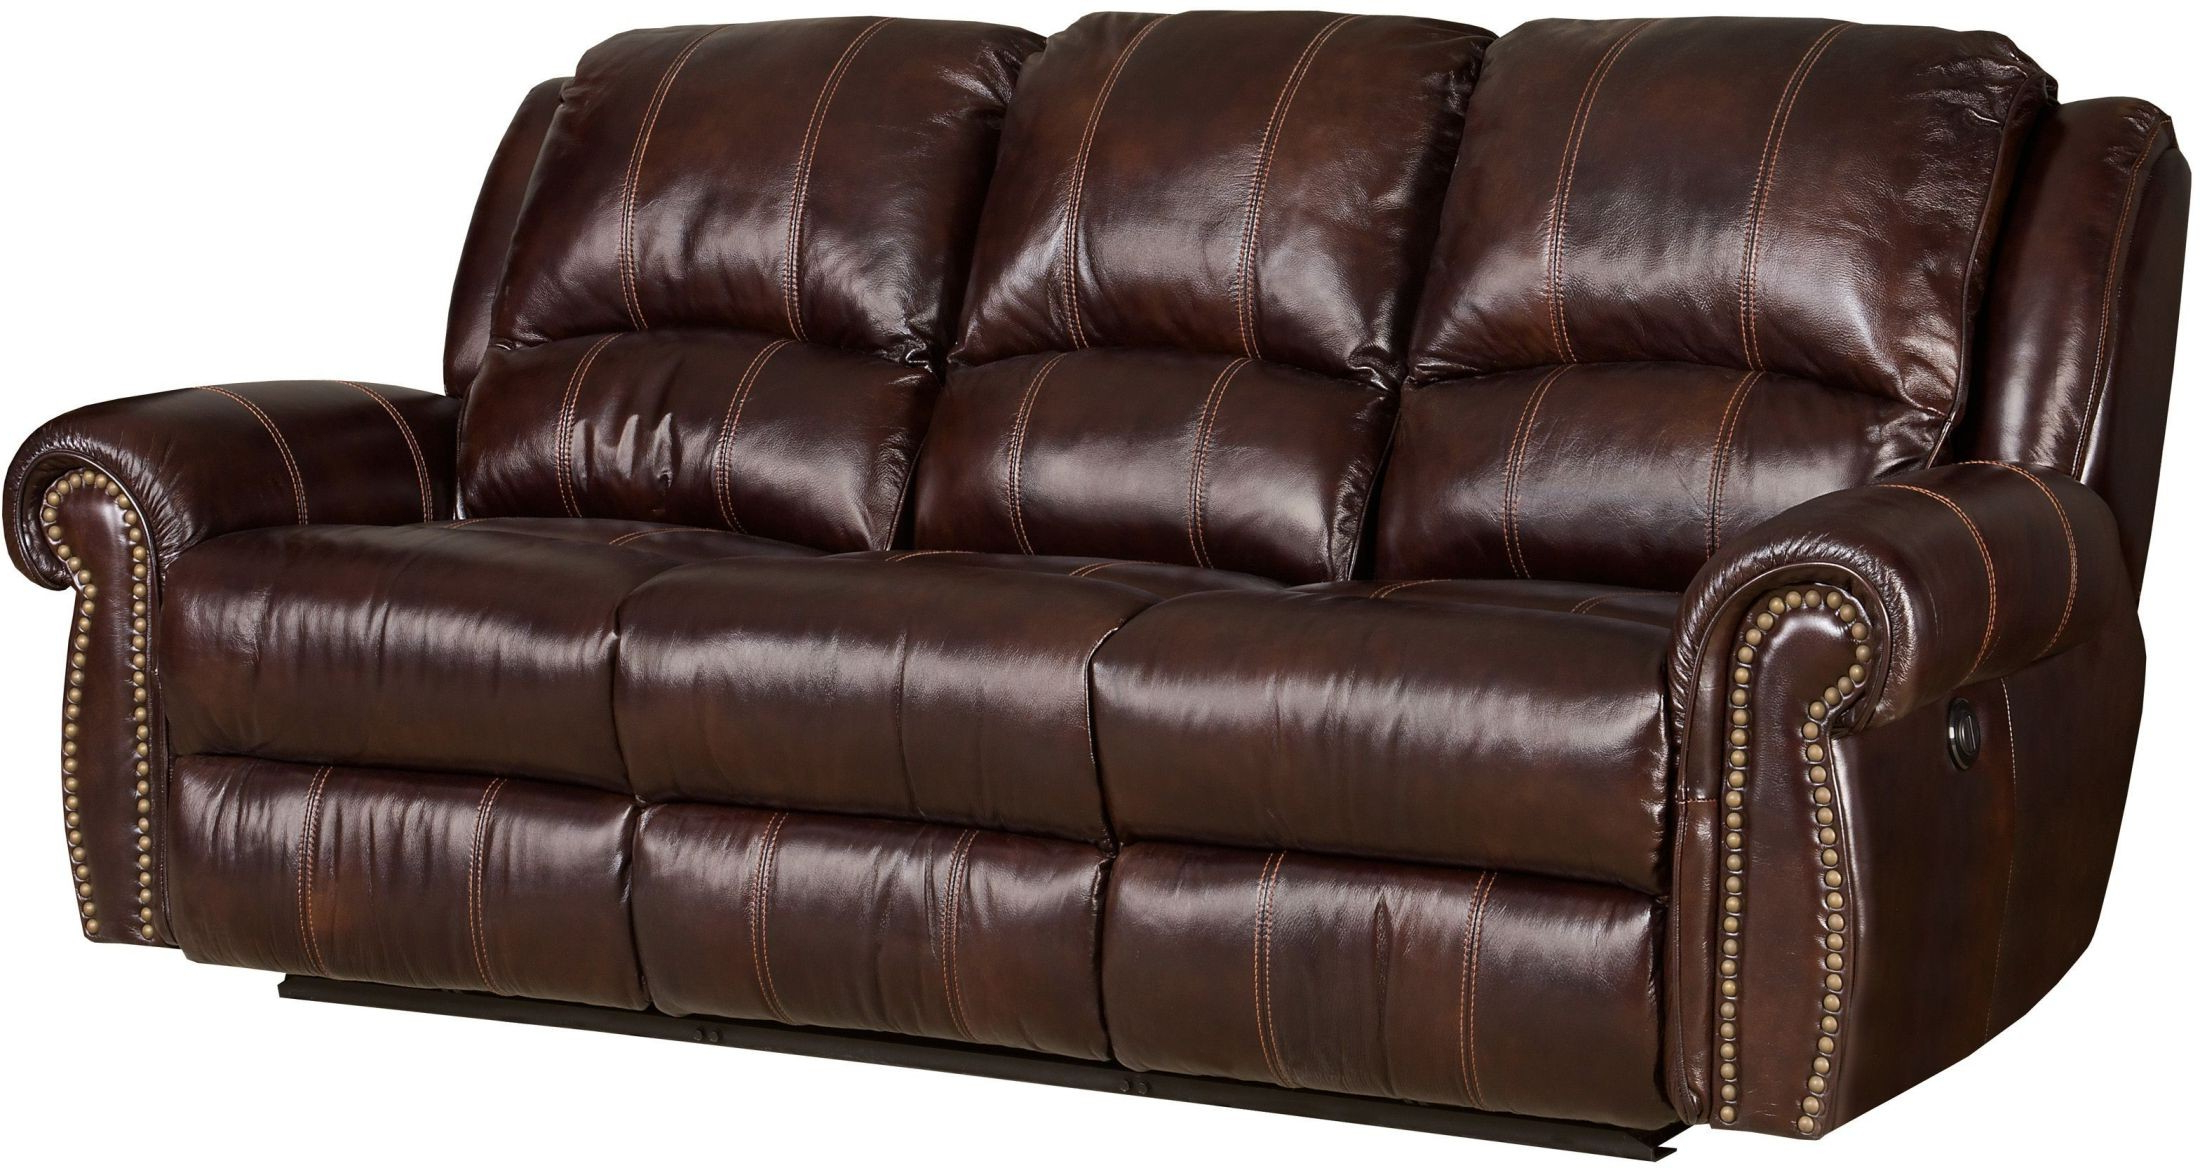 Expedition Brown Power Reclining Sofas Pertaining To Well Liked Jackson Brown Power Leather Reclining Sofa From Hooker (View 5 of 15)